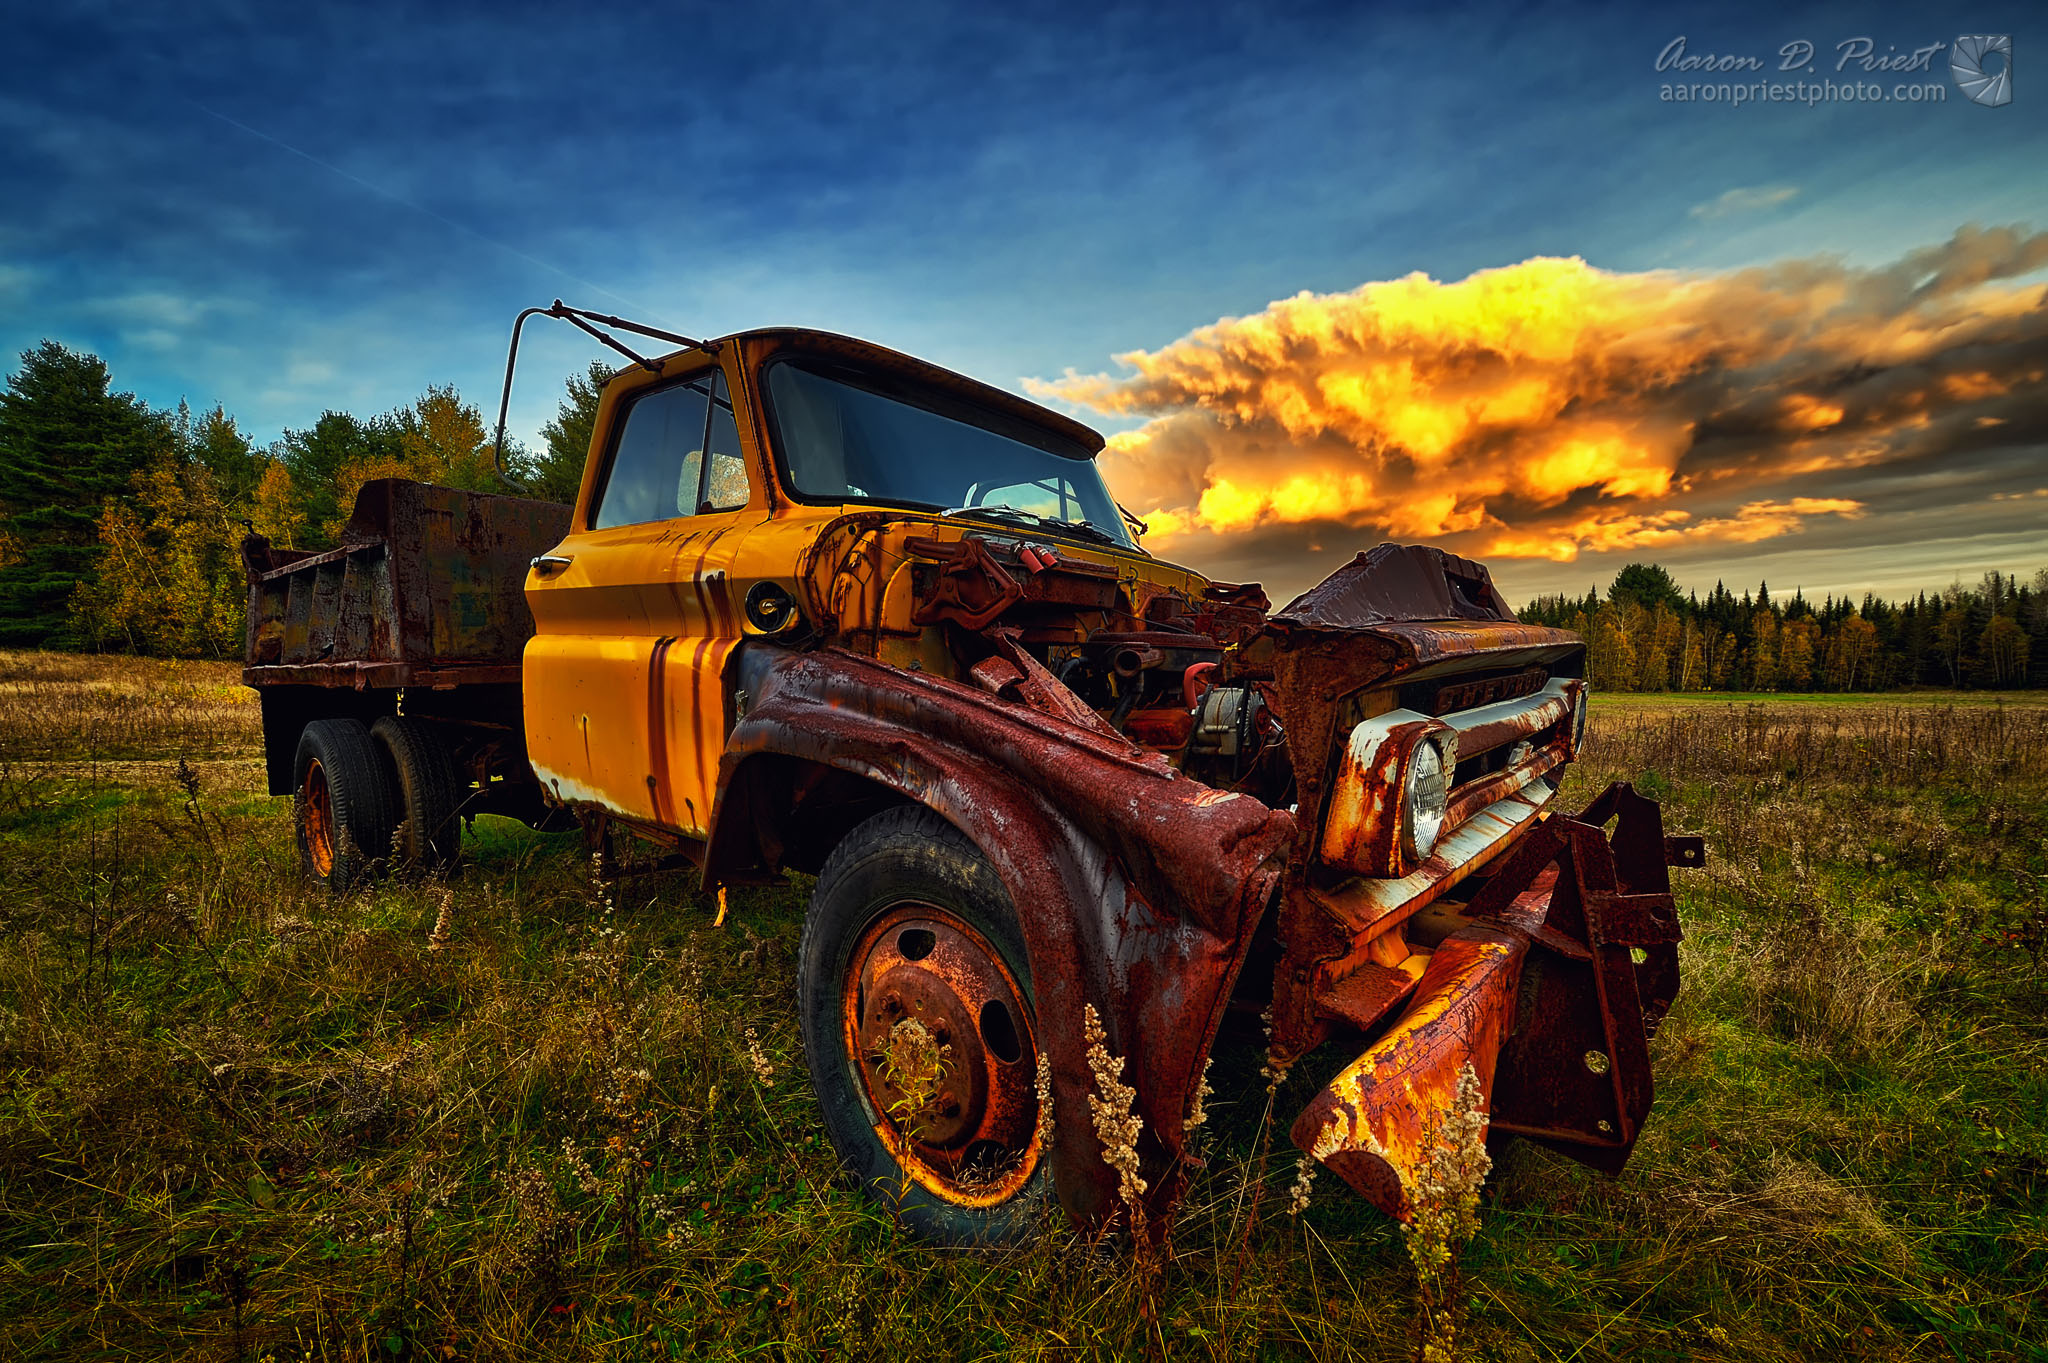 Old dump truck at sunset | Aaron Priest Photography